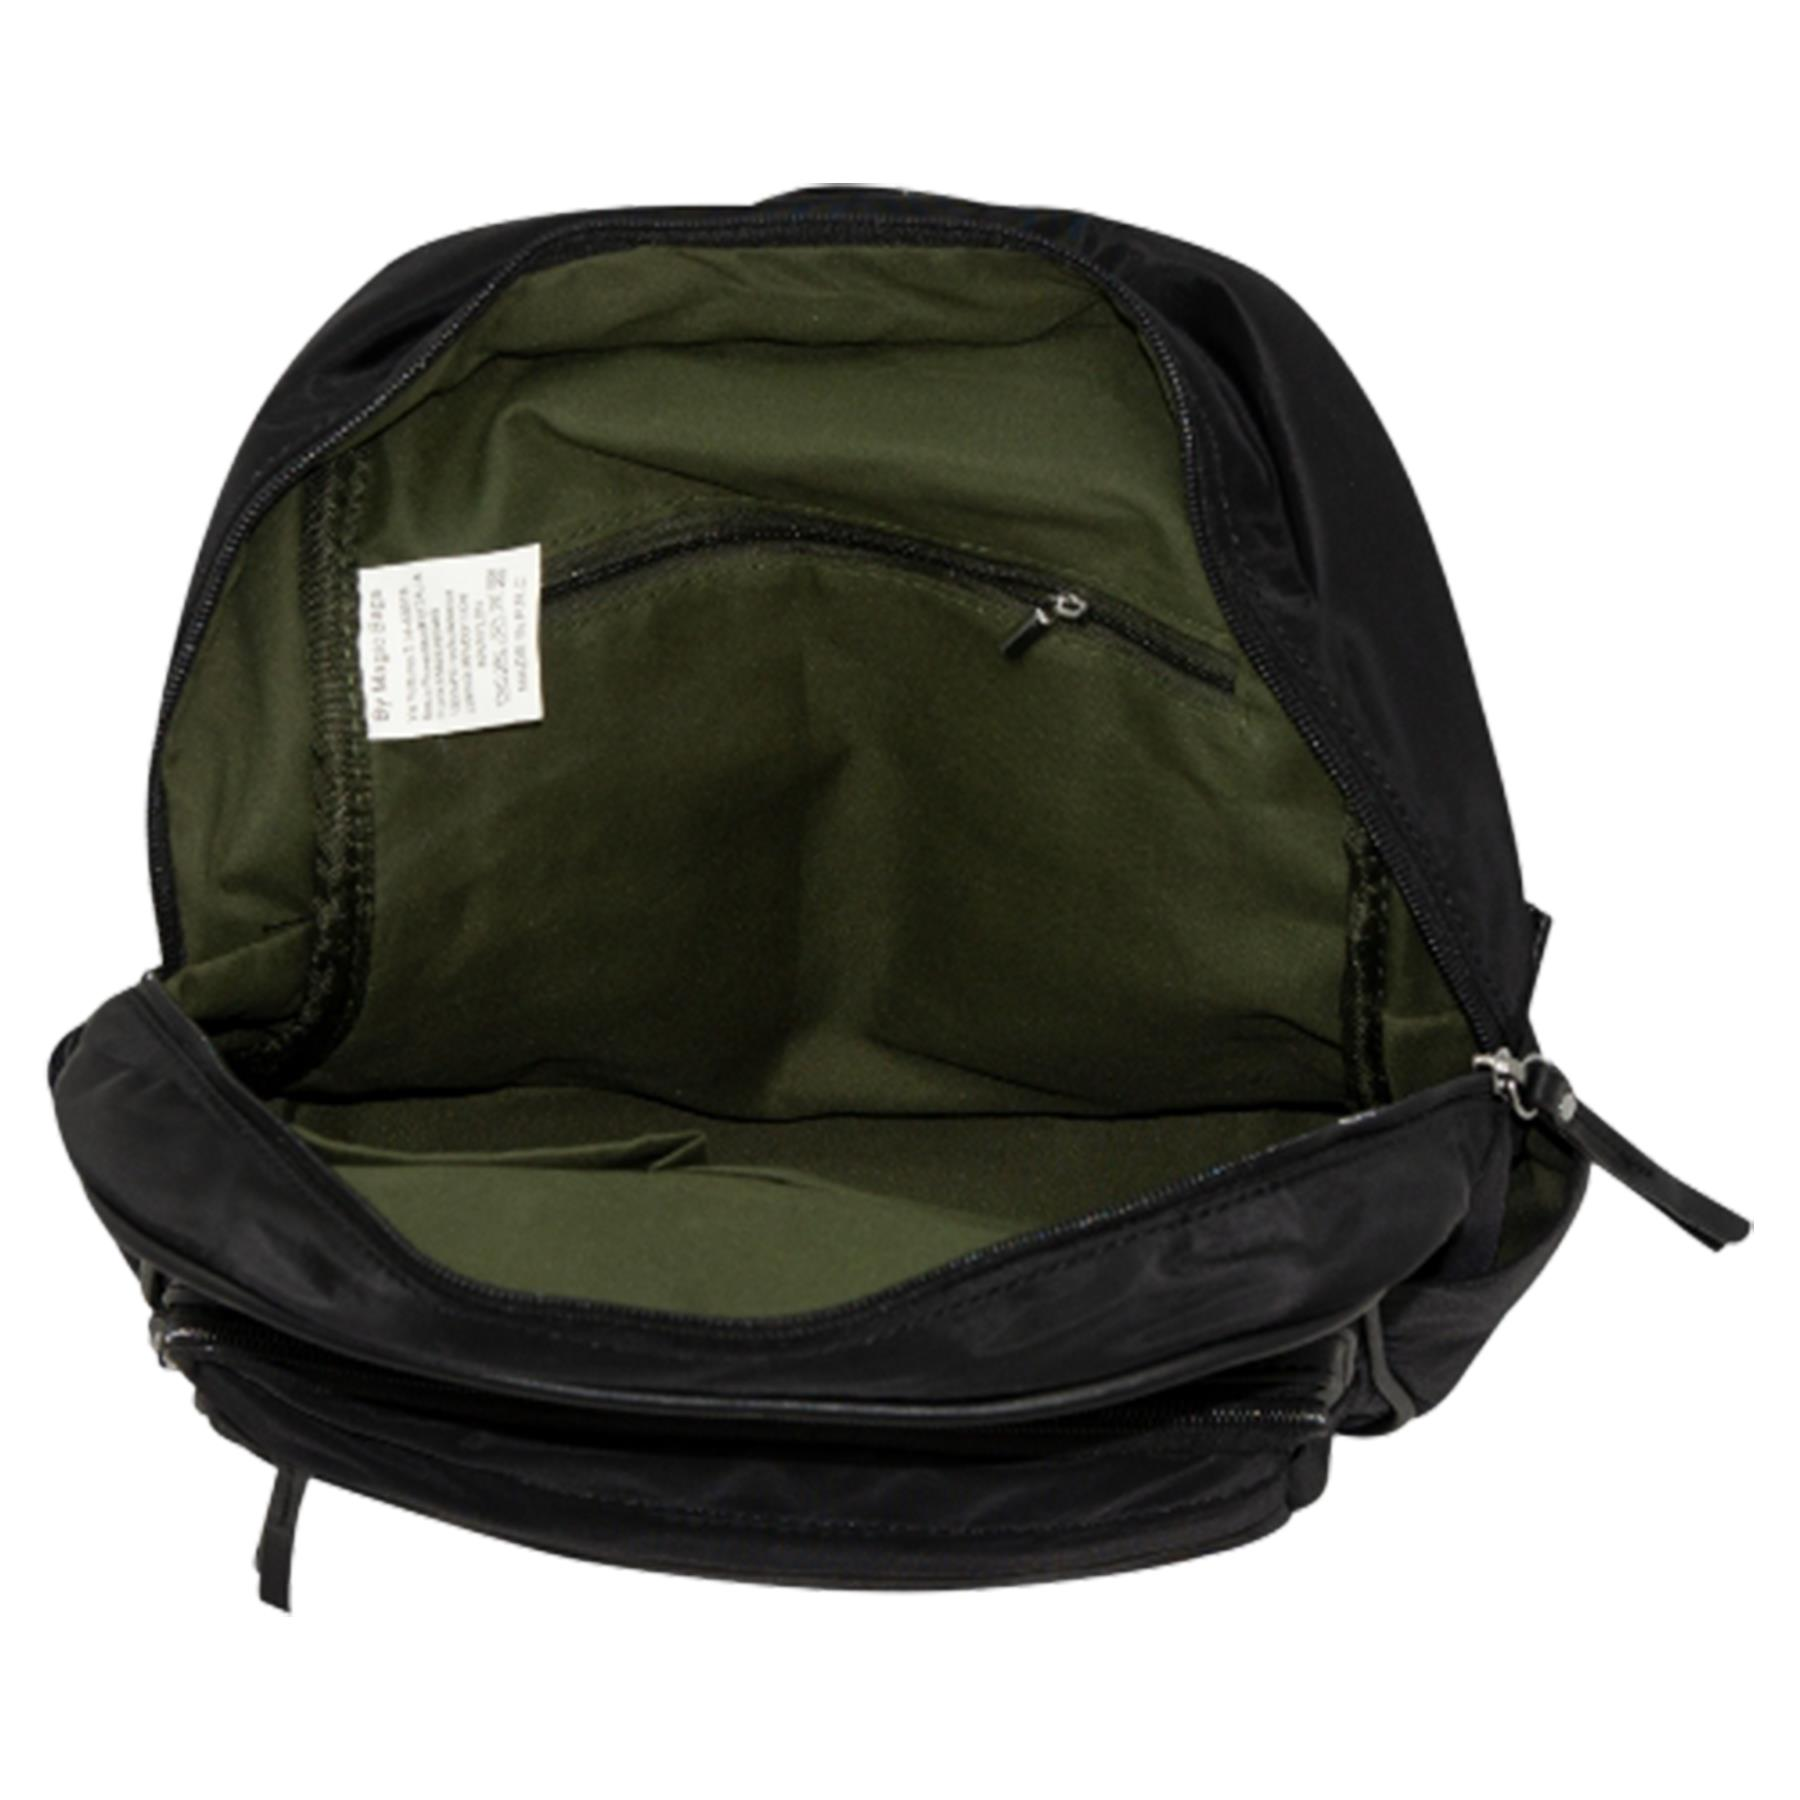 New-Unisex-Plain-Nylon-Showerproof-School-College-Backpack-Rucksack thumbnail 6